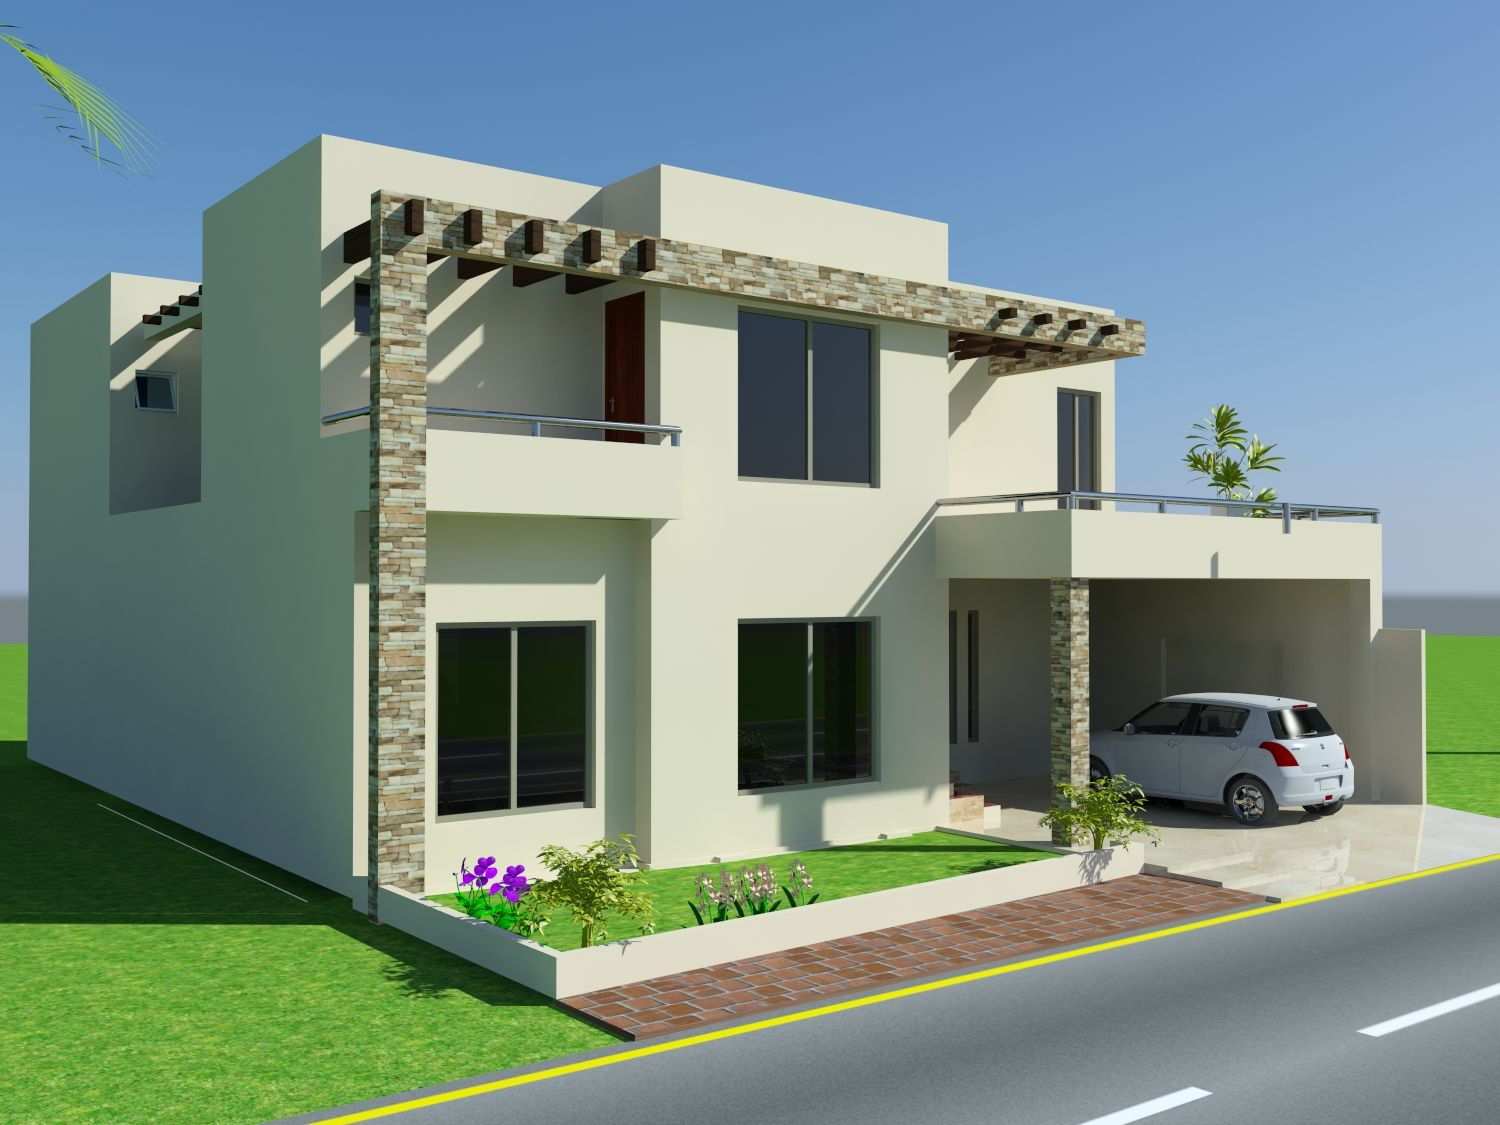 3d Front Elevation Com 10 Marla House Design Mian Wali Pakistan House Design Pinterest